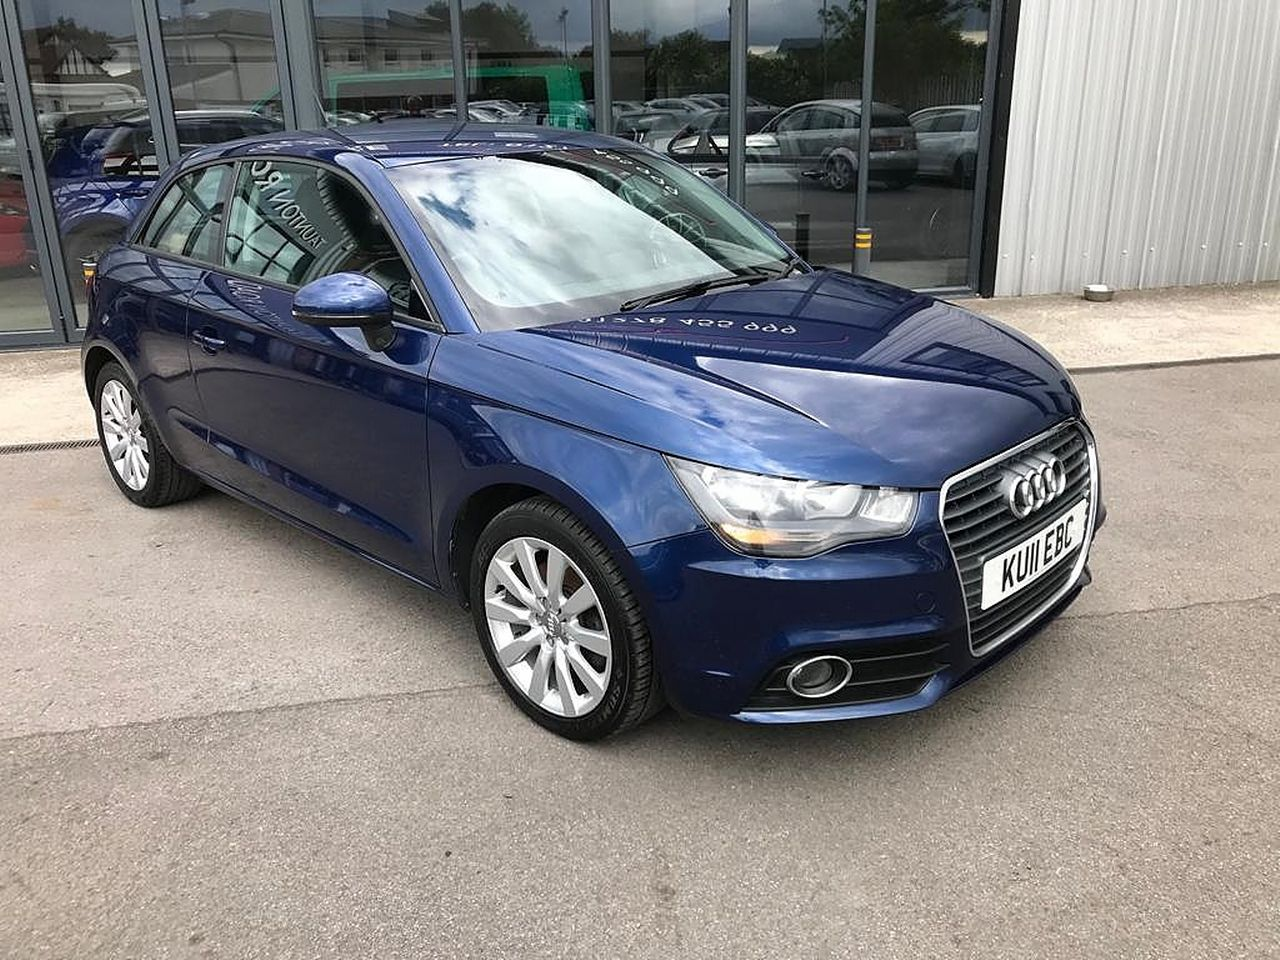 2011 AUDI A1 1.6 TDI Sport 105PS - Picture 8 of 19